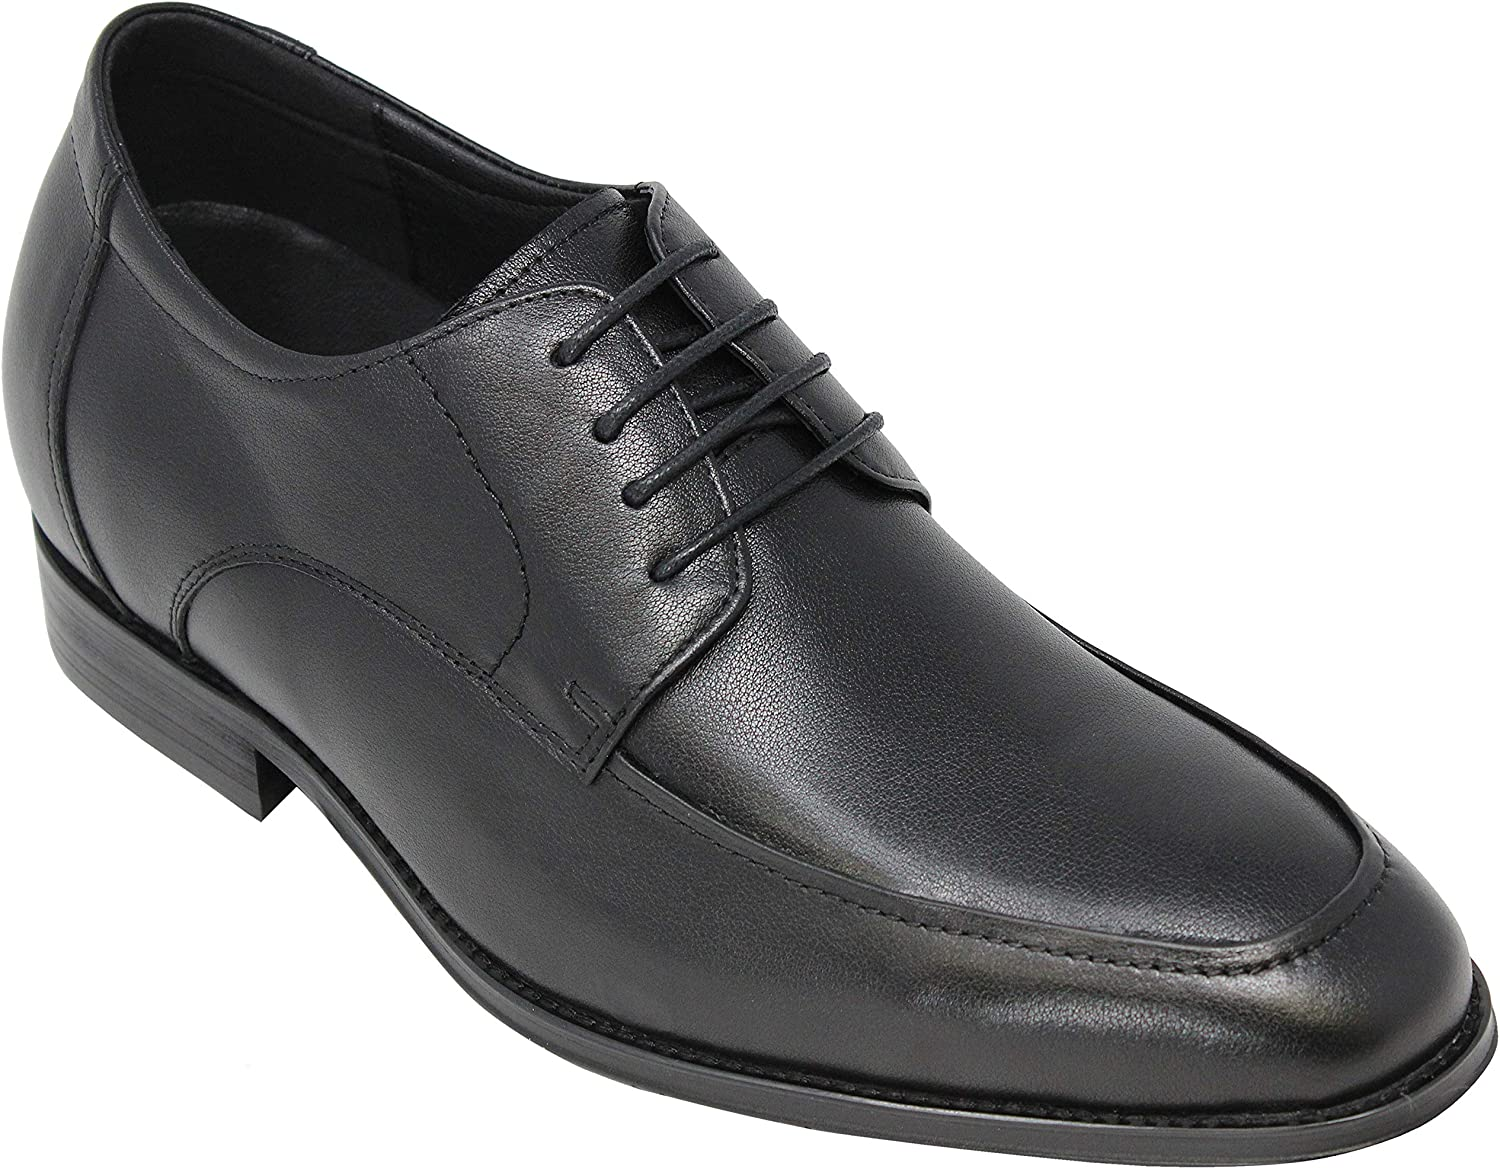 CALTO Men's Invisible Height Increasing Elevator shoes - Black Premium Leather Lace-up Formal Oxfords - Y40213-3 Inches Taller